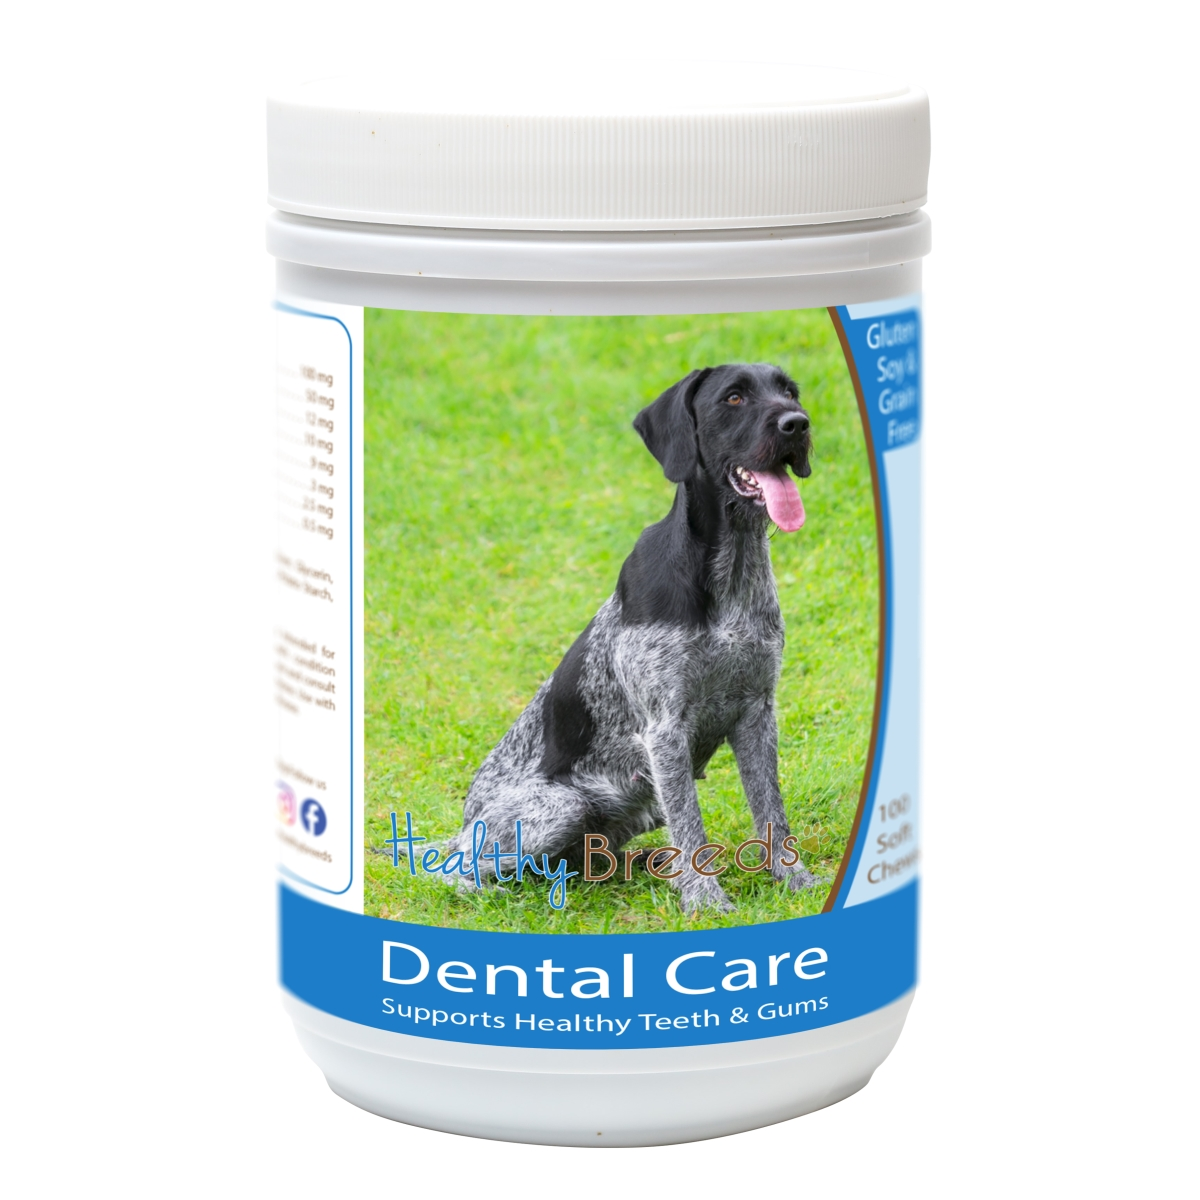 Healthy Breeds 840235162742 German Wirehaired Pointer Breath Care Soft Chews for Dogs - 60 Count